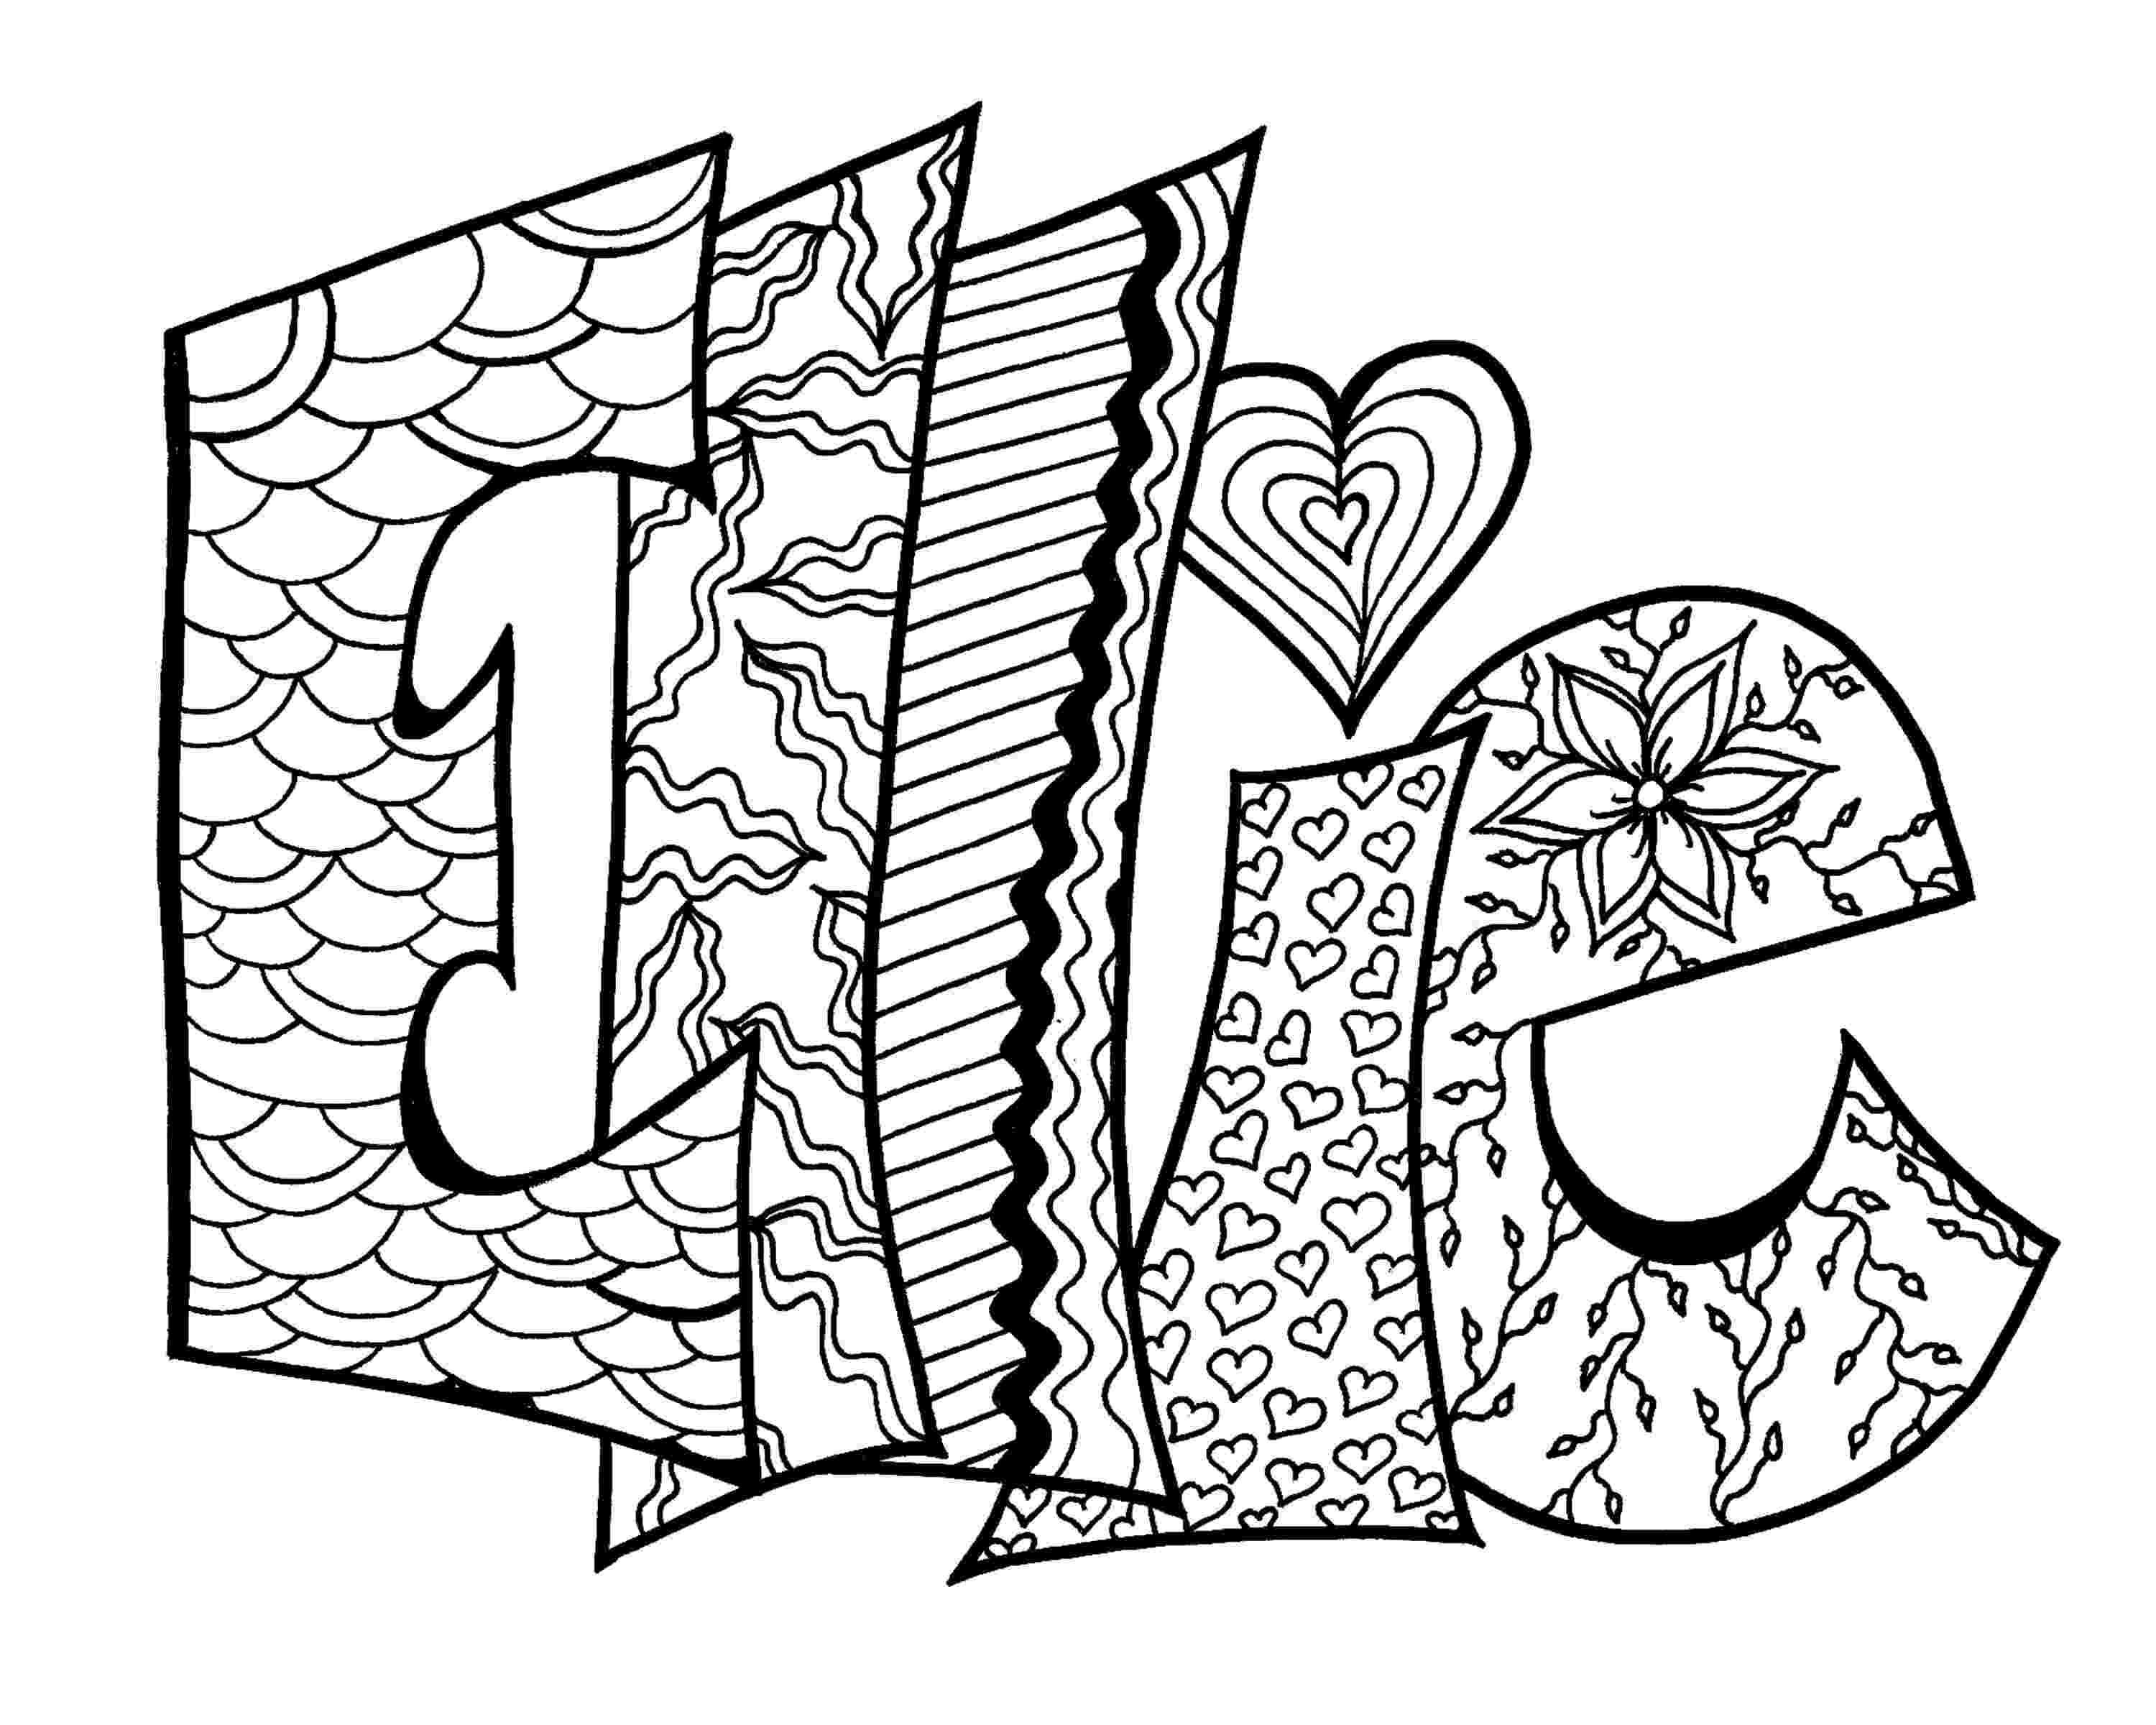 free printable coloring sheets with names cristiano ronaldo coloring pages at getcoloringscom with names sheets printable free coloring